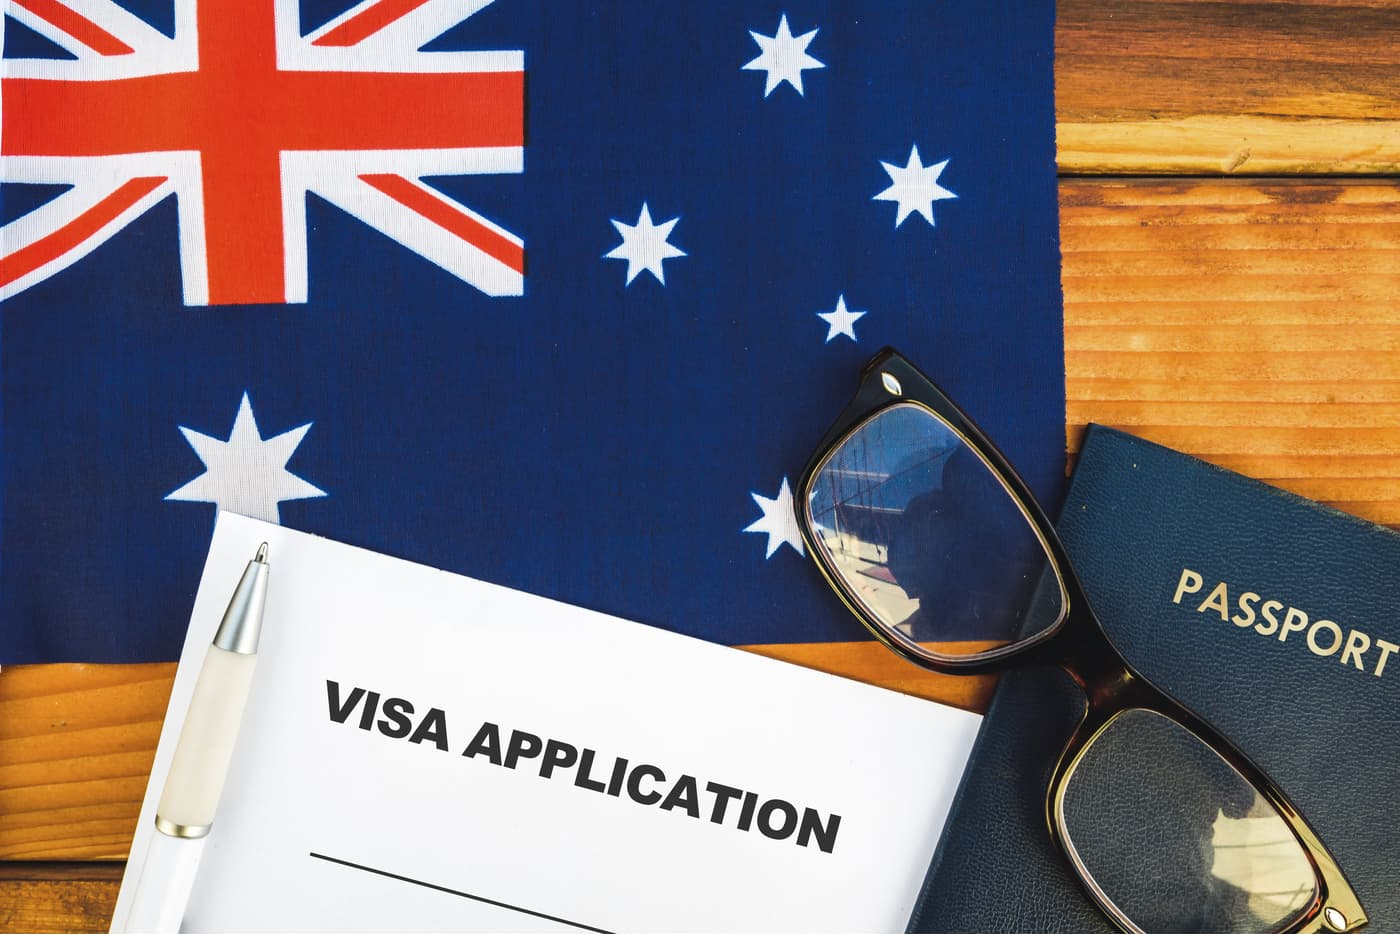 Australian flag with visa application and passport on wooden table